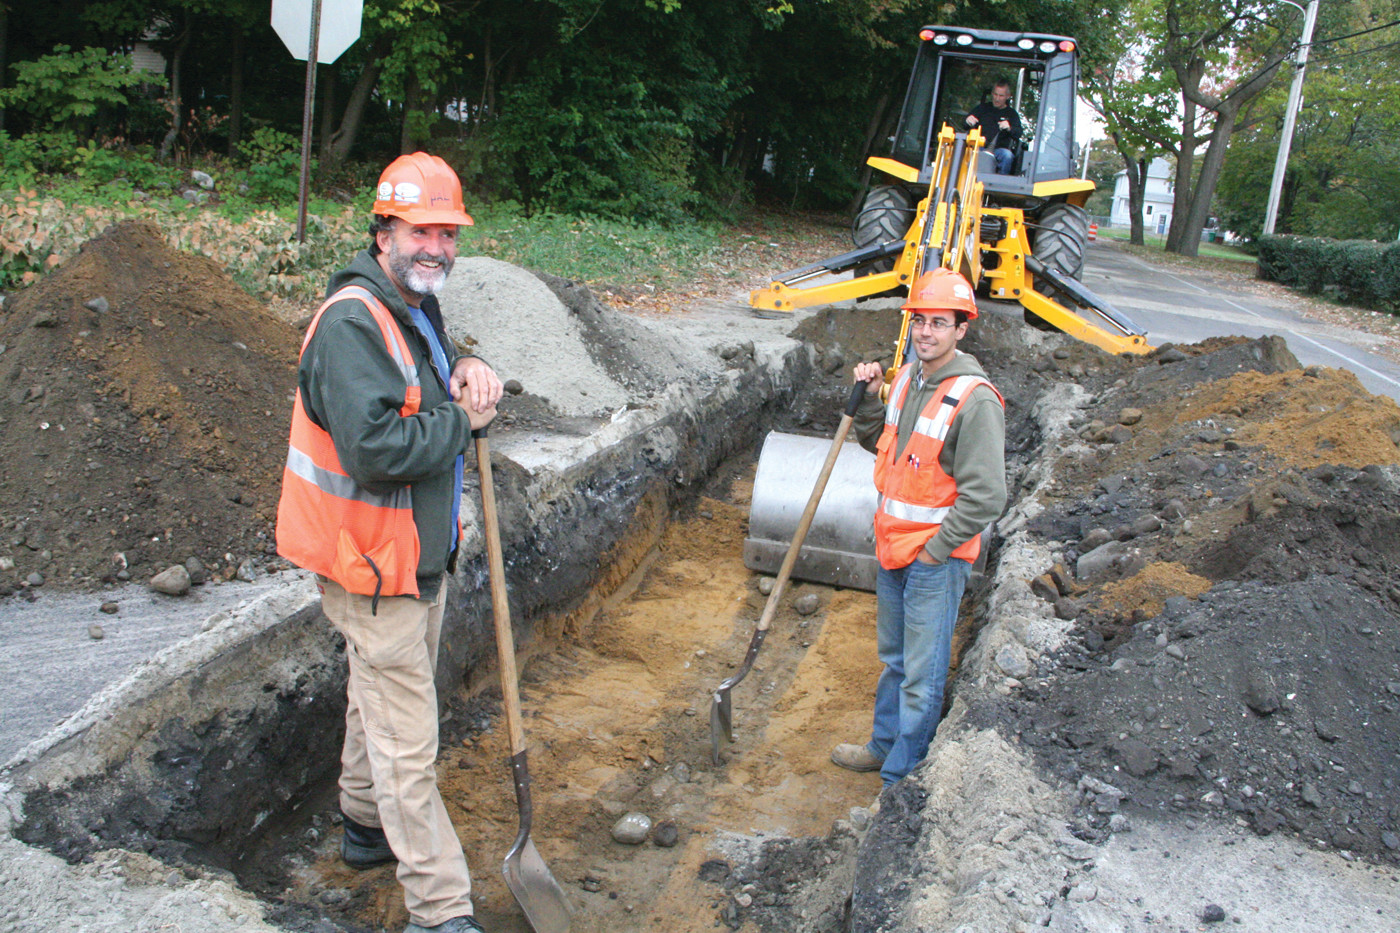 YOU NEVER KNOW WHAT YOU�LL FIND: Archaeologists Kirk Van Dyke and Alex Flick stand by as a flat bladed backhoe unearths section of Tidewater Drive in a survey of the trench to be used for a main sewer line.